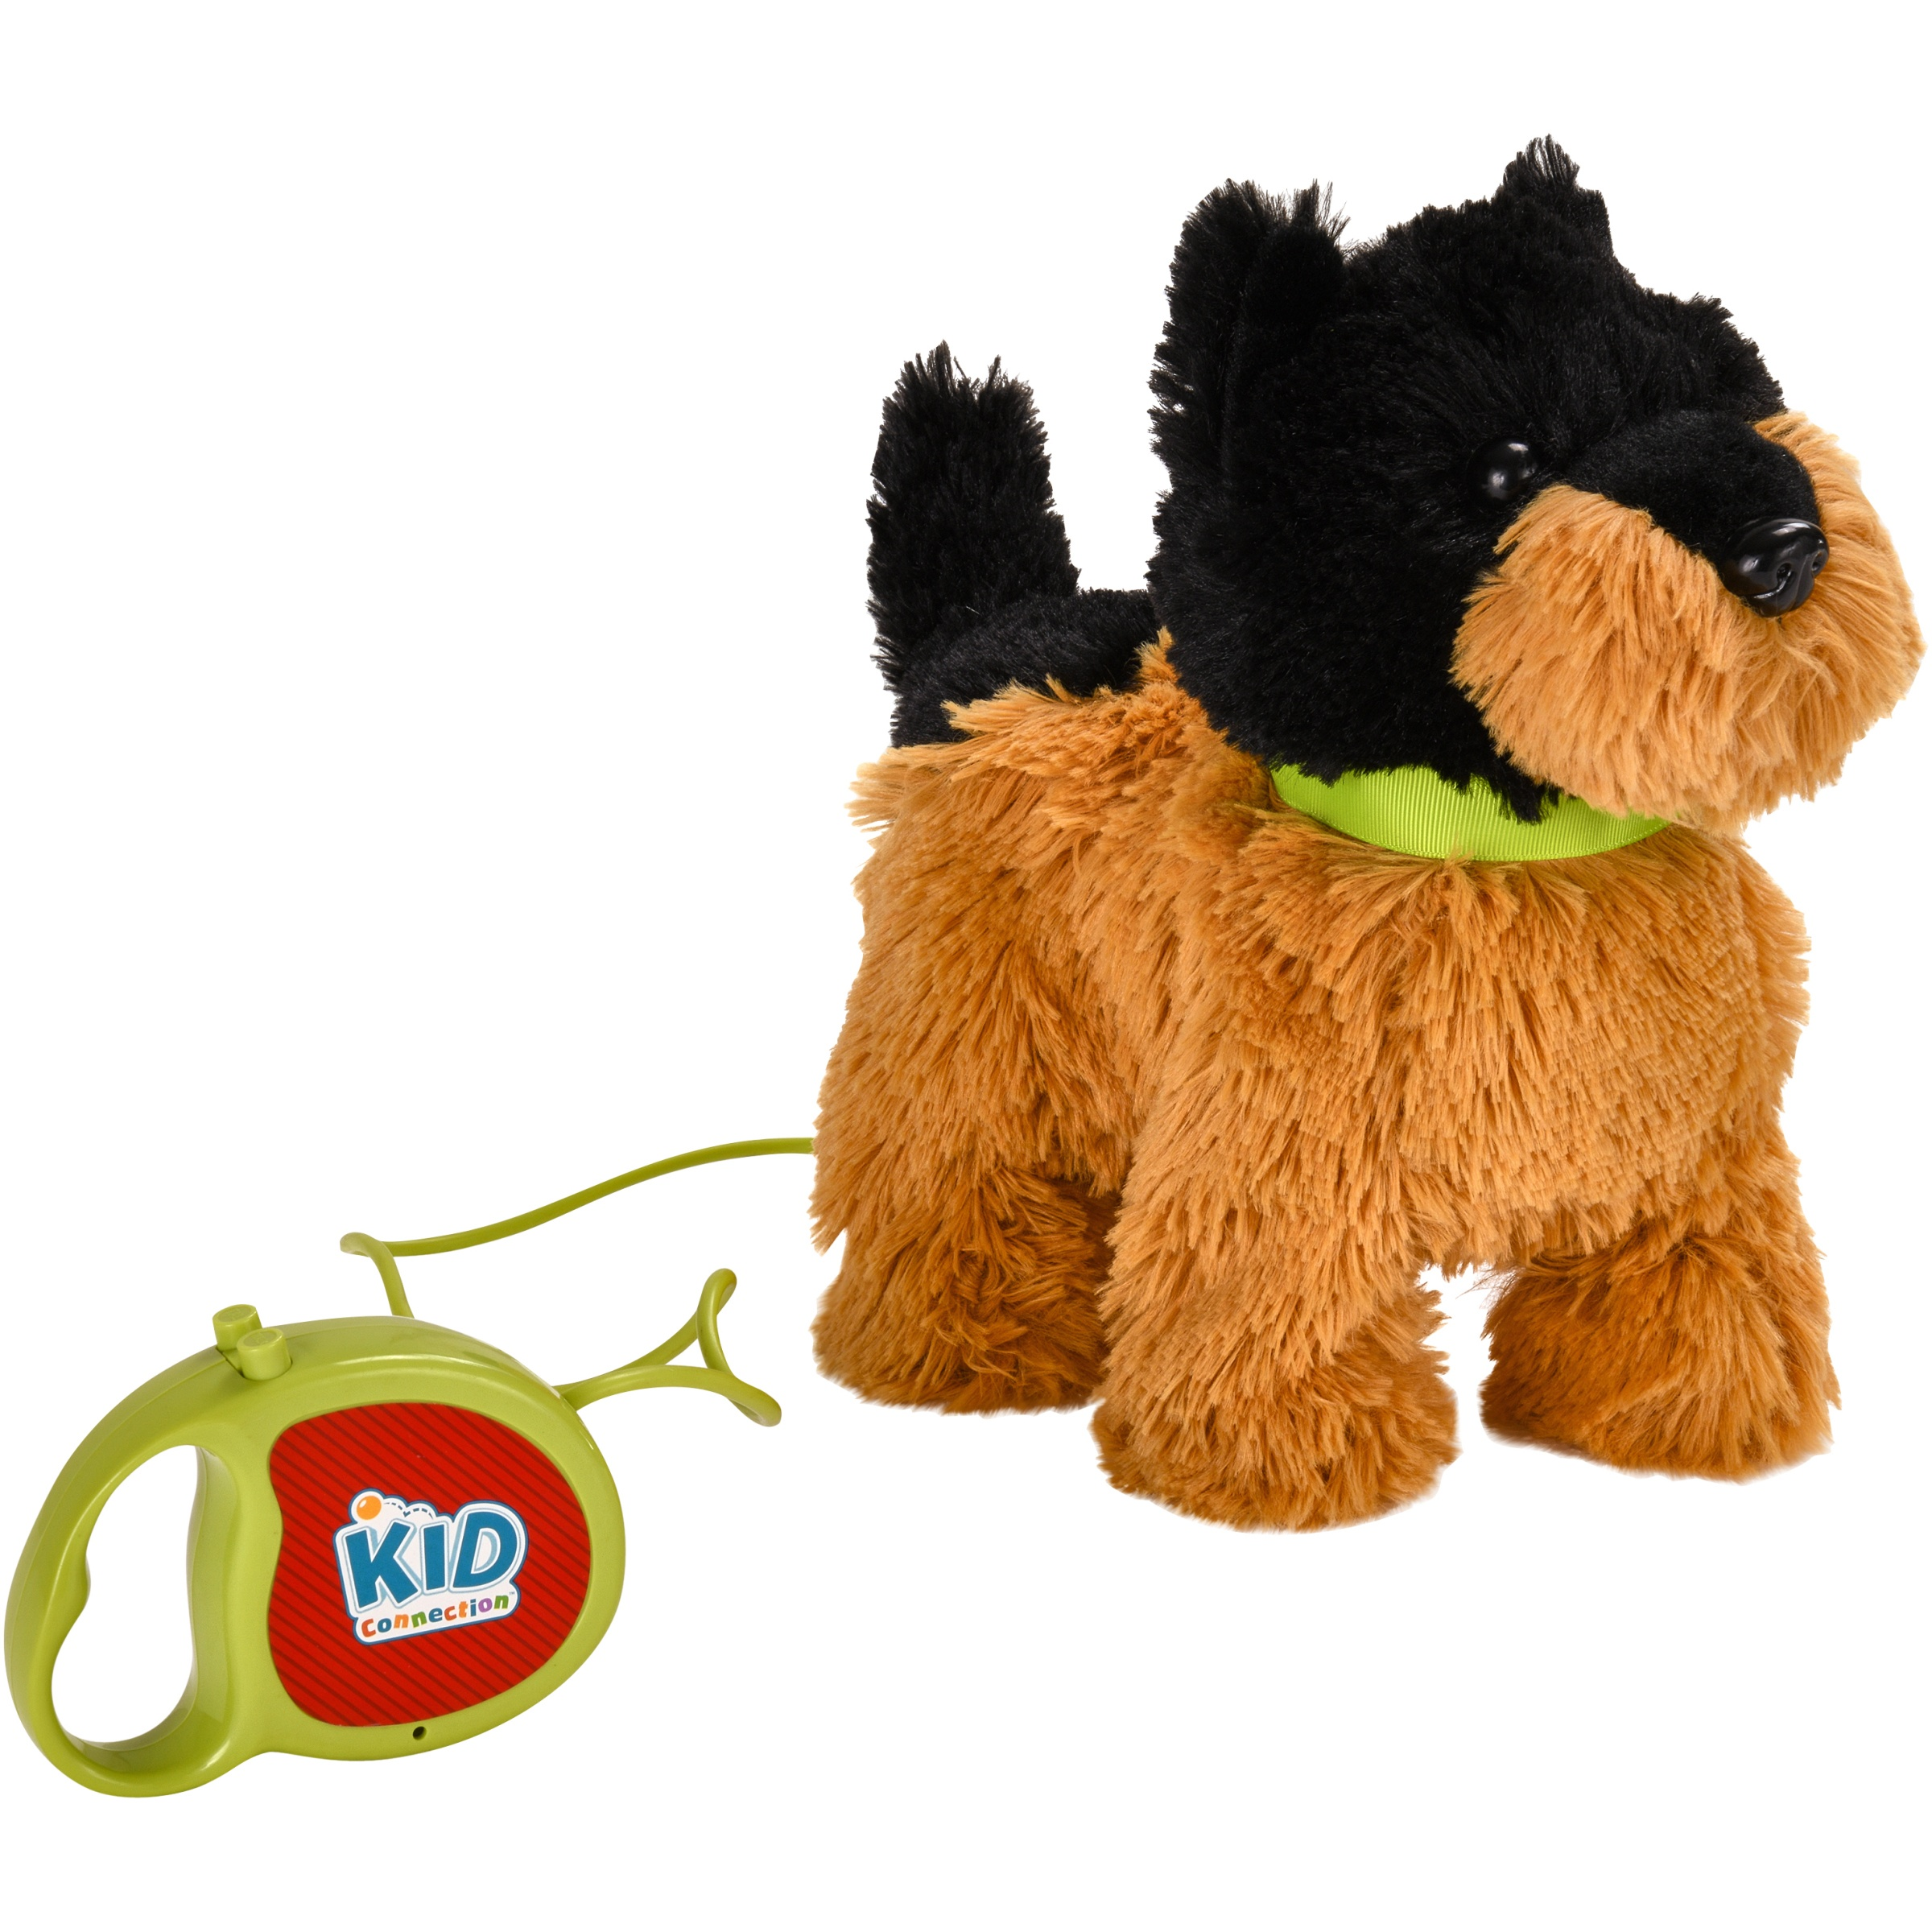 "Kid Connection 9"" Plush Yorkie Walking Pet, Brown & Black"